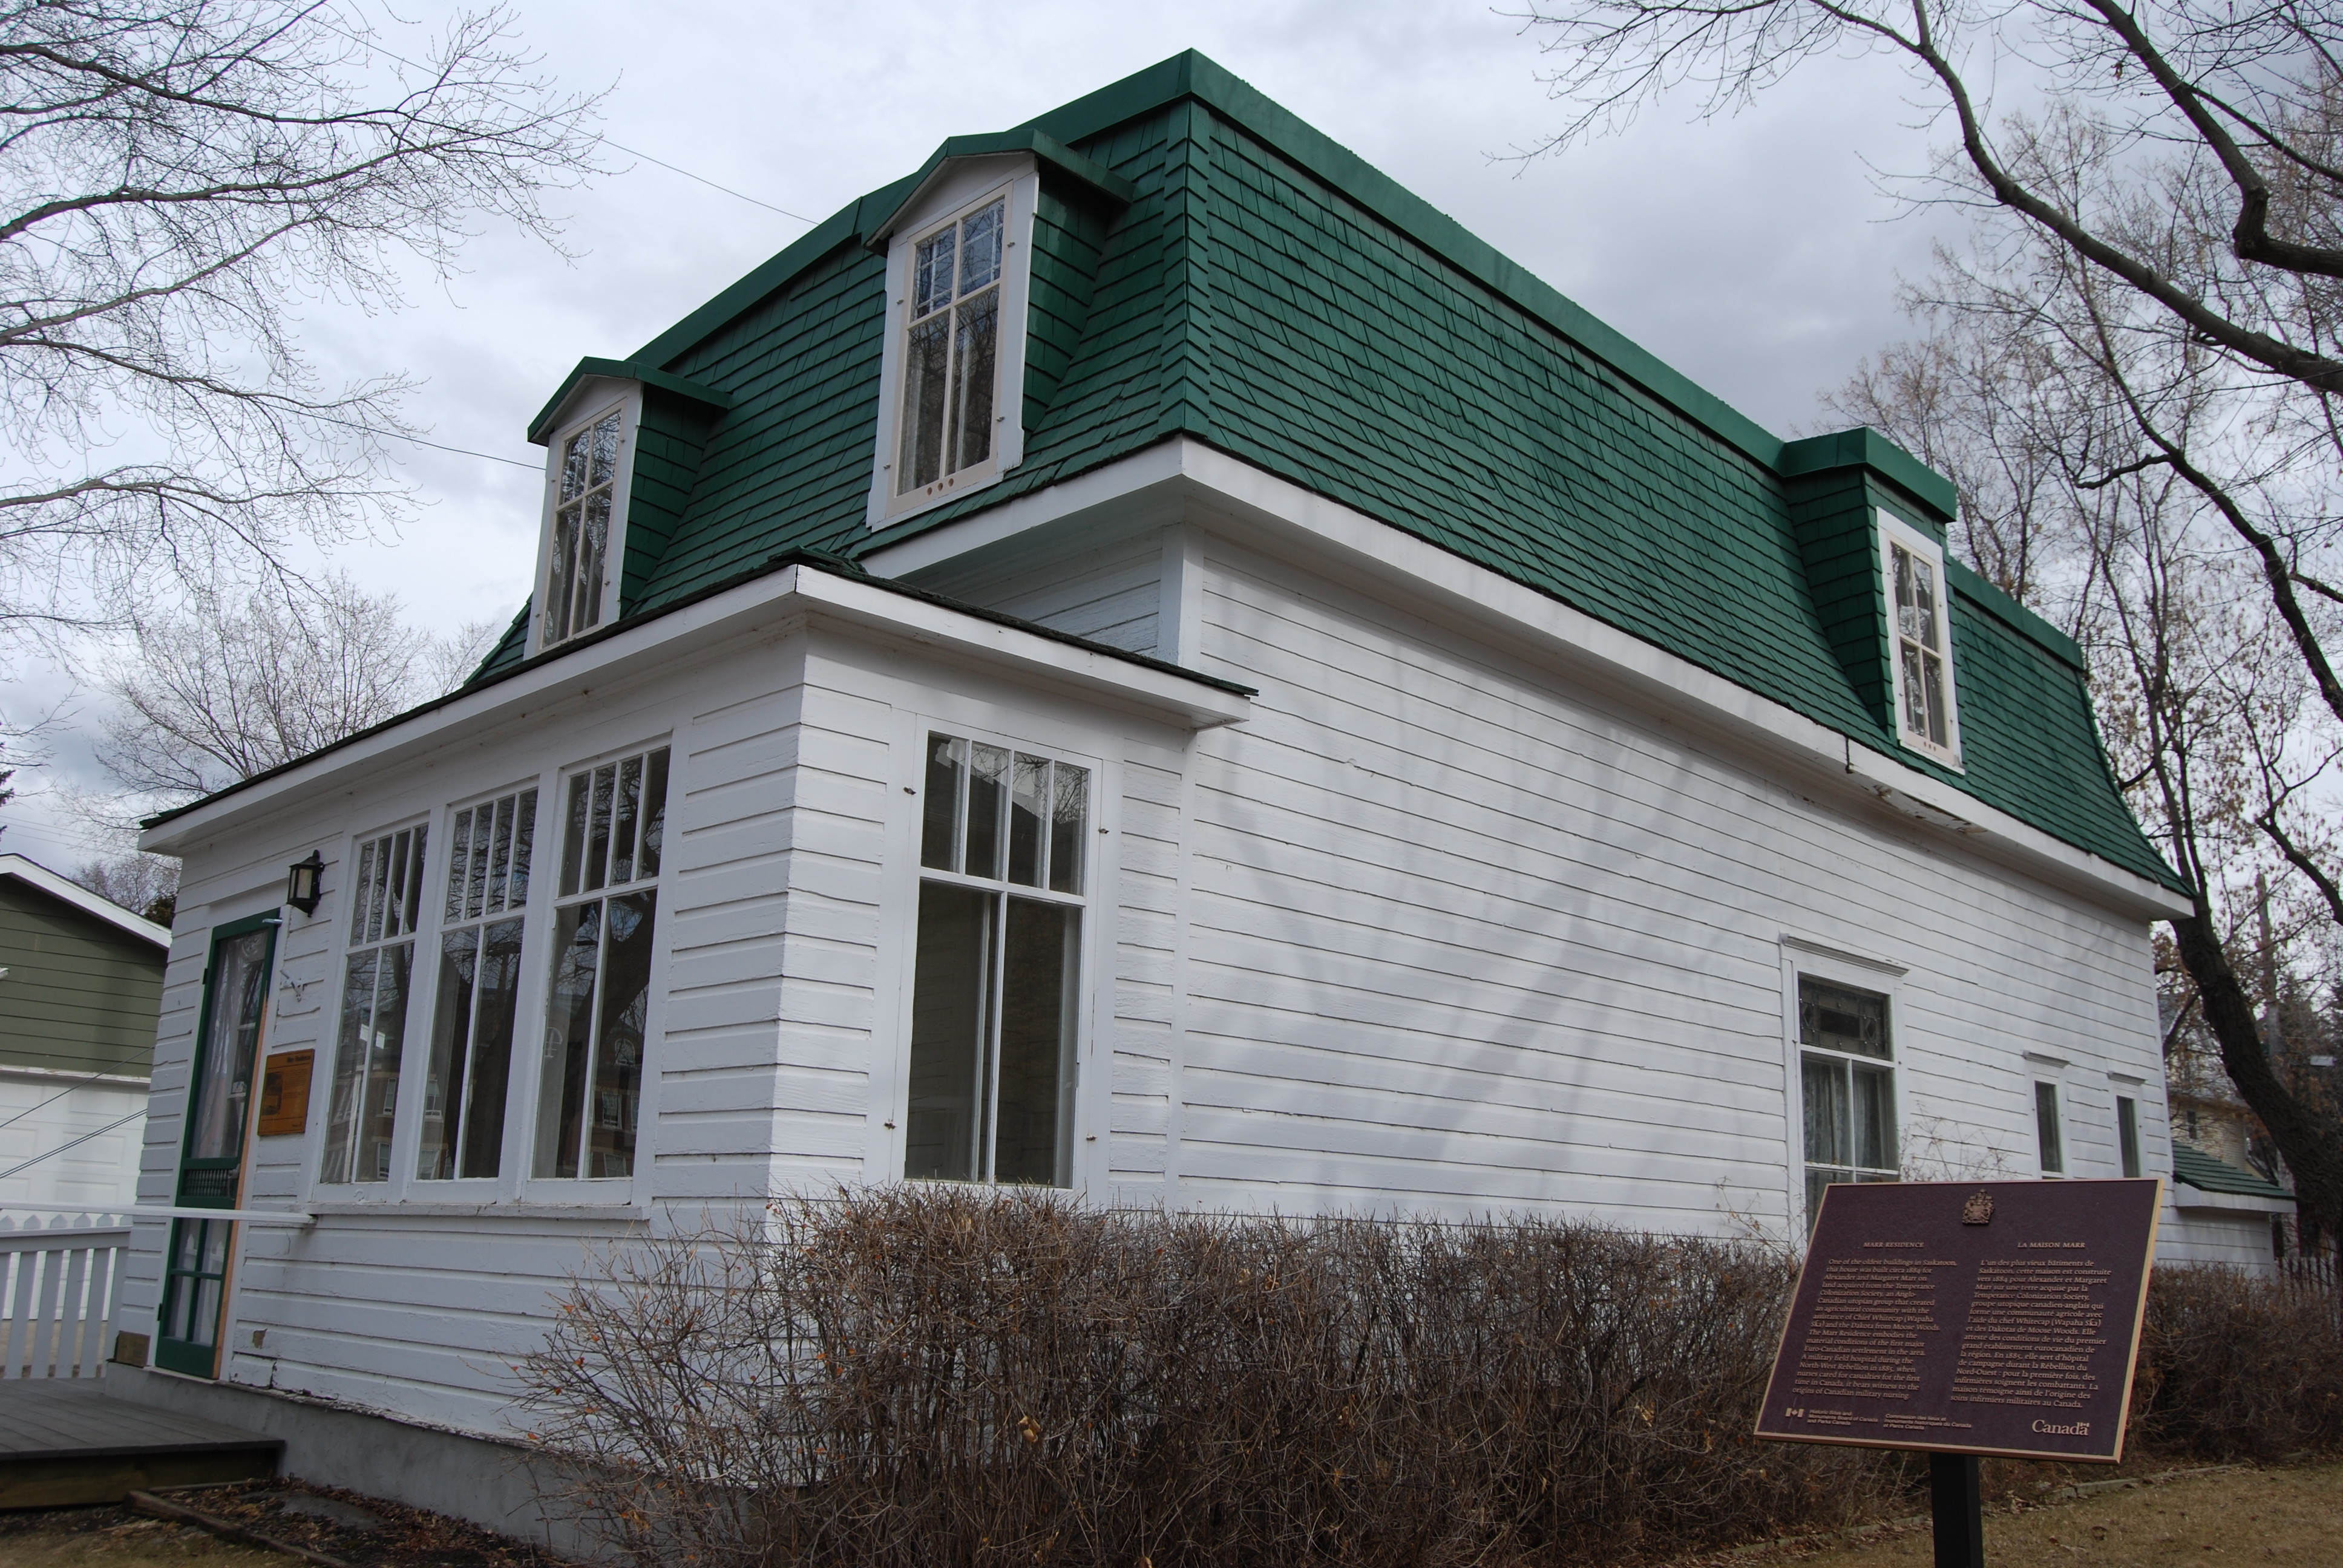 Just a year shy of the Capitol demolition, three properties were recommended for protection, including the Marr Residence. It's the oldest house in Saskatoon still standing on its original site. (Guy Quenneville/CBC)